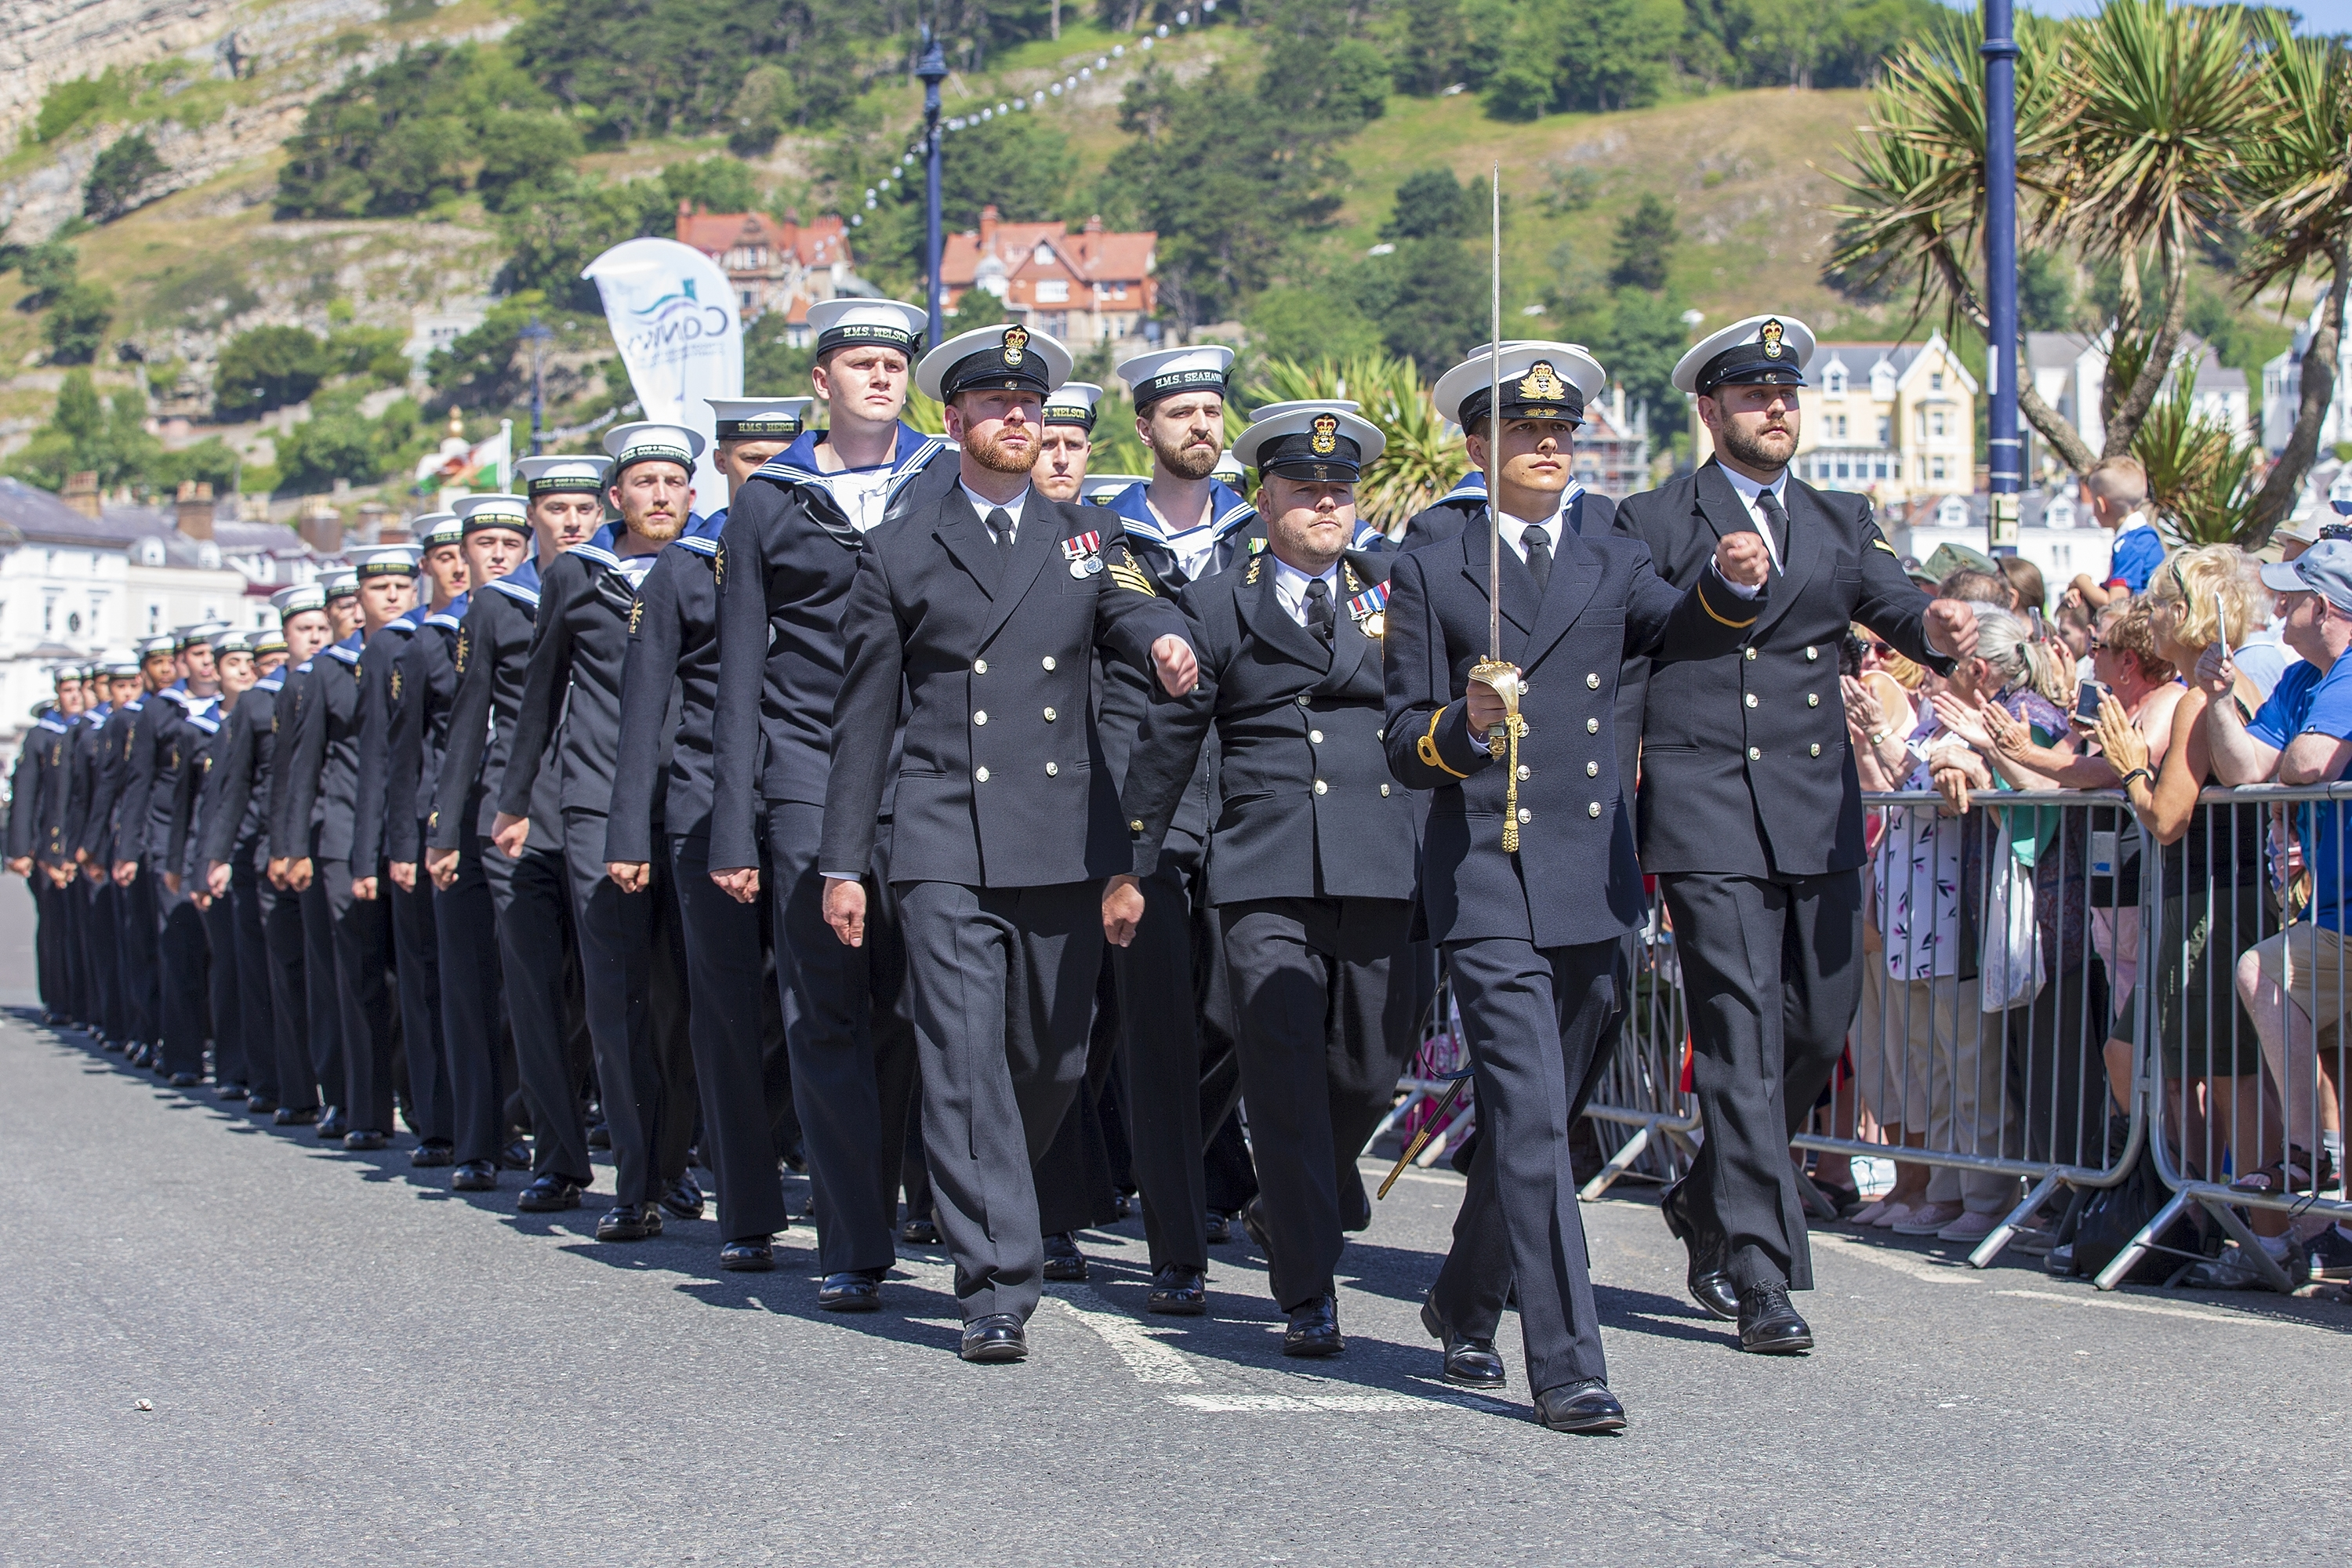 Afd National Event – Armed Forces Day